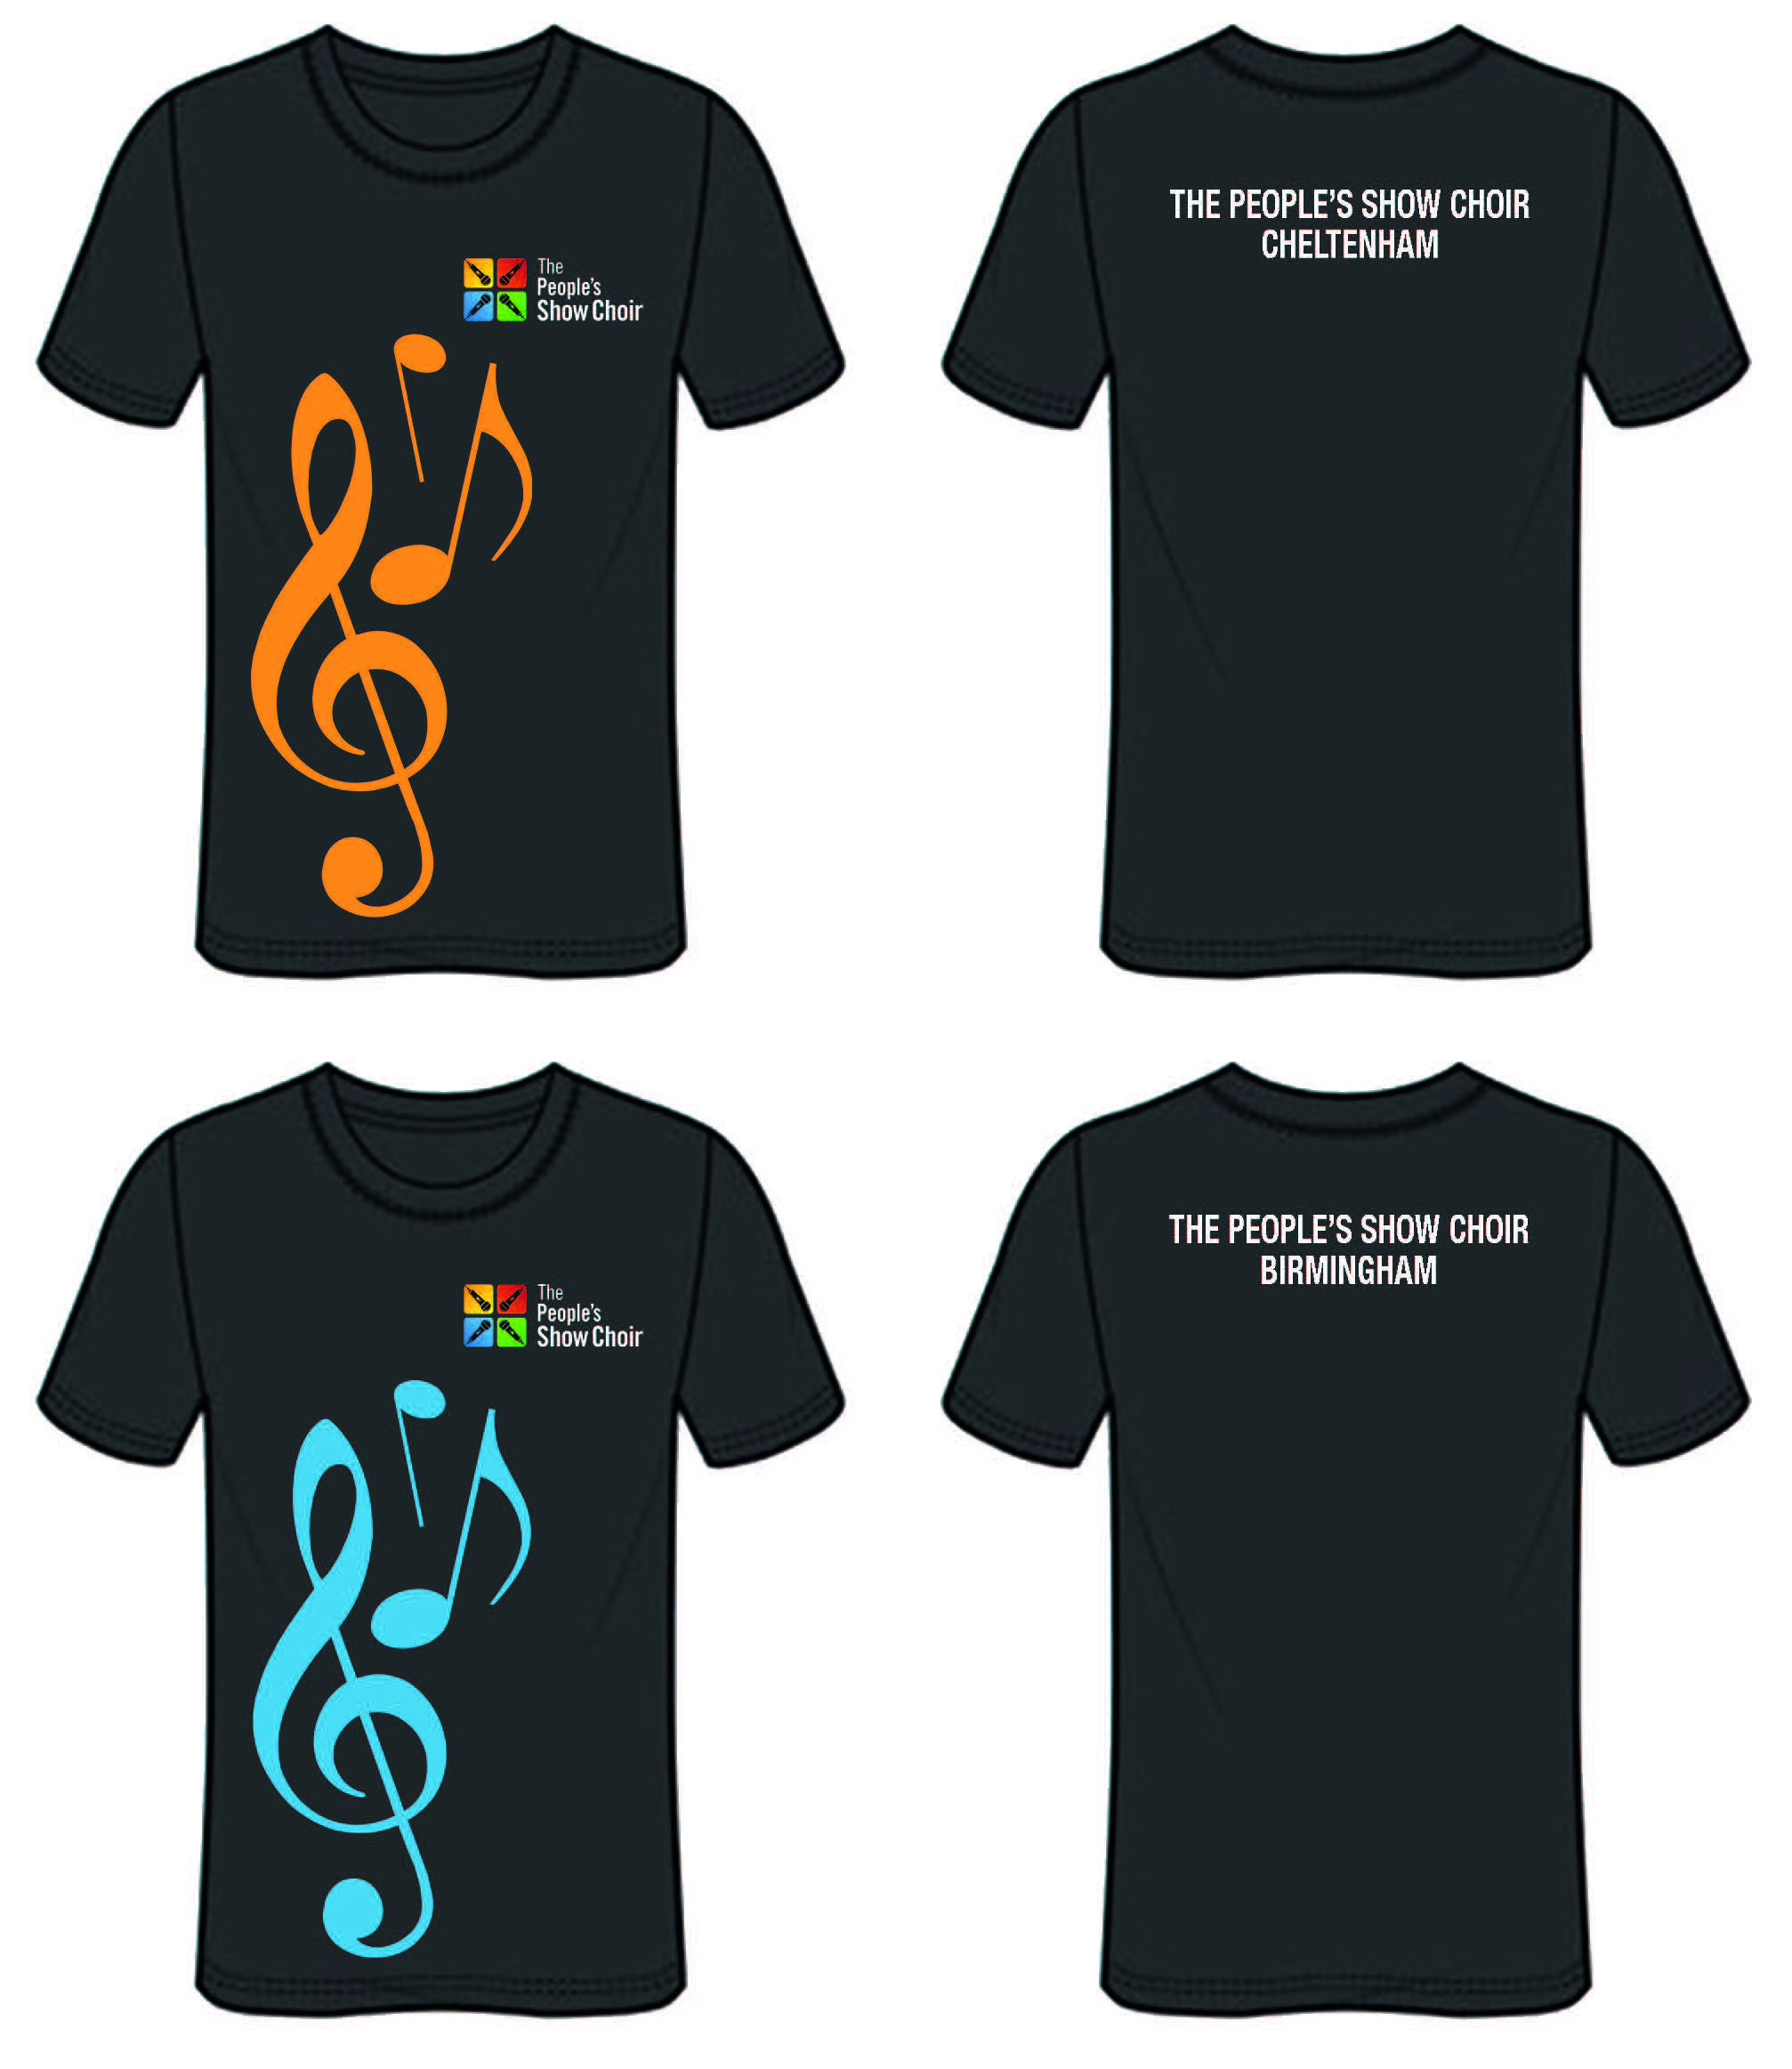 The People's Show Choir T Shirt